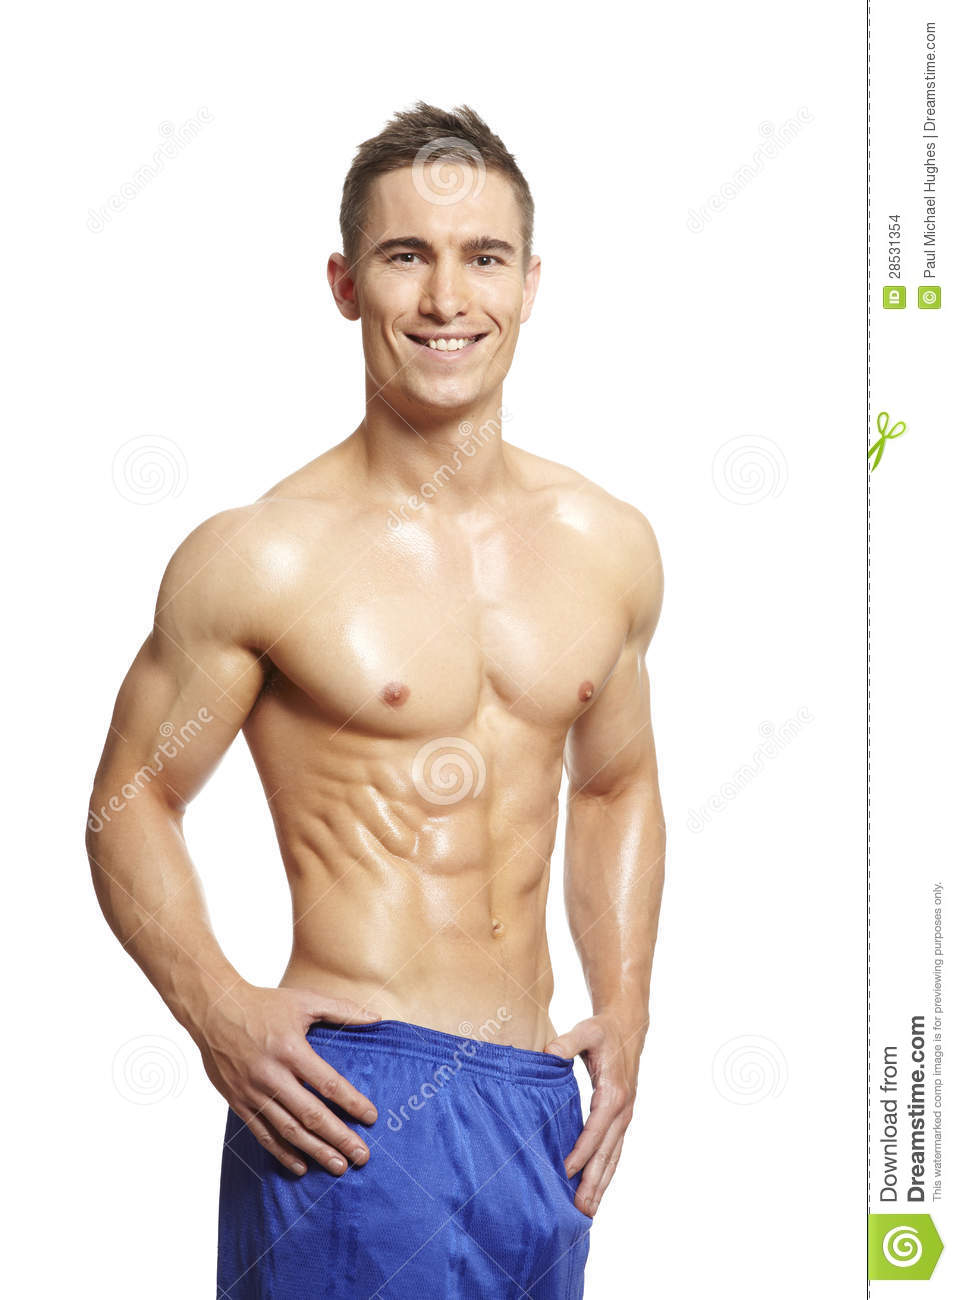 Muscular young man flexing muscles in sports outfit on white ...